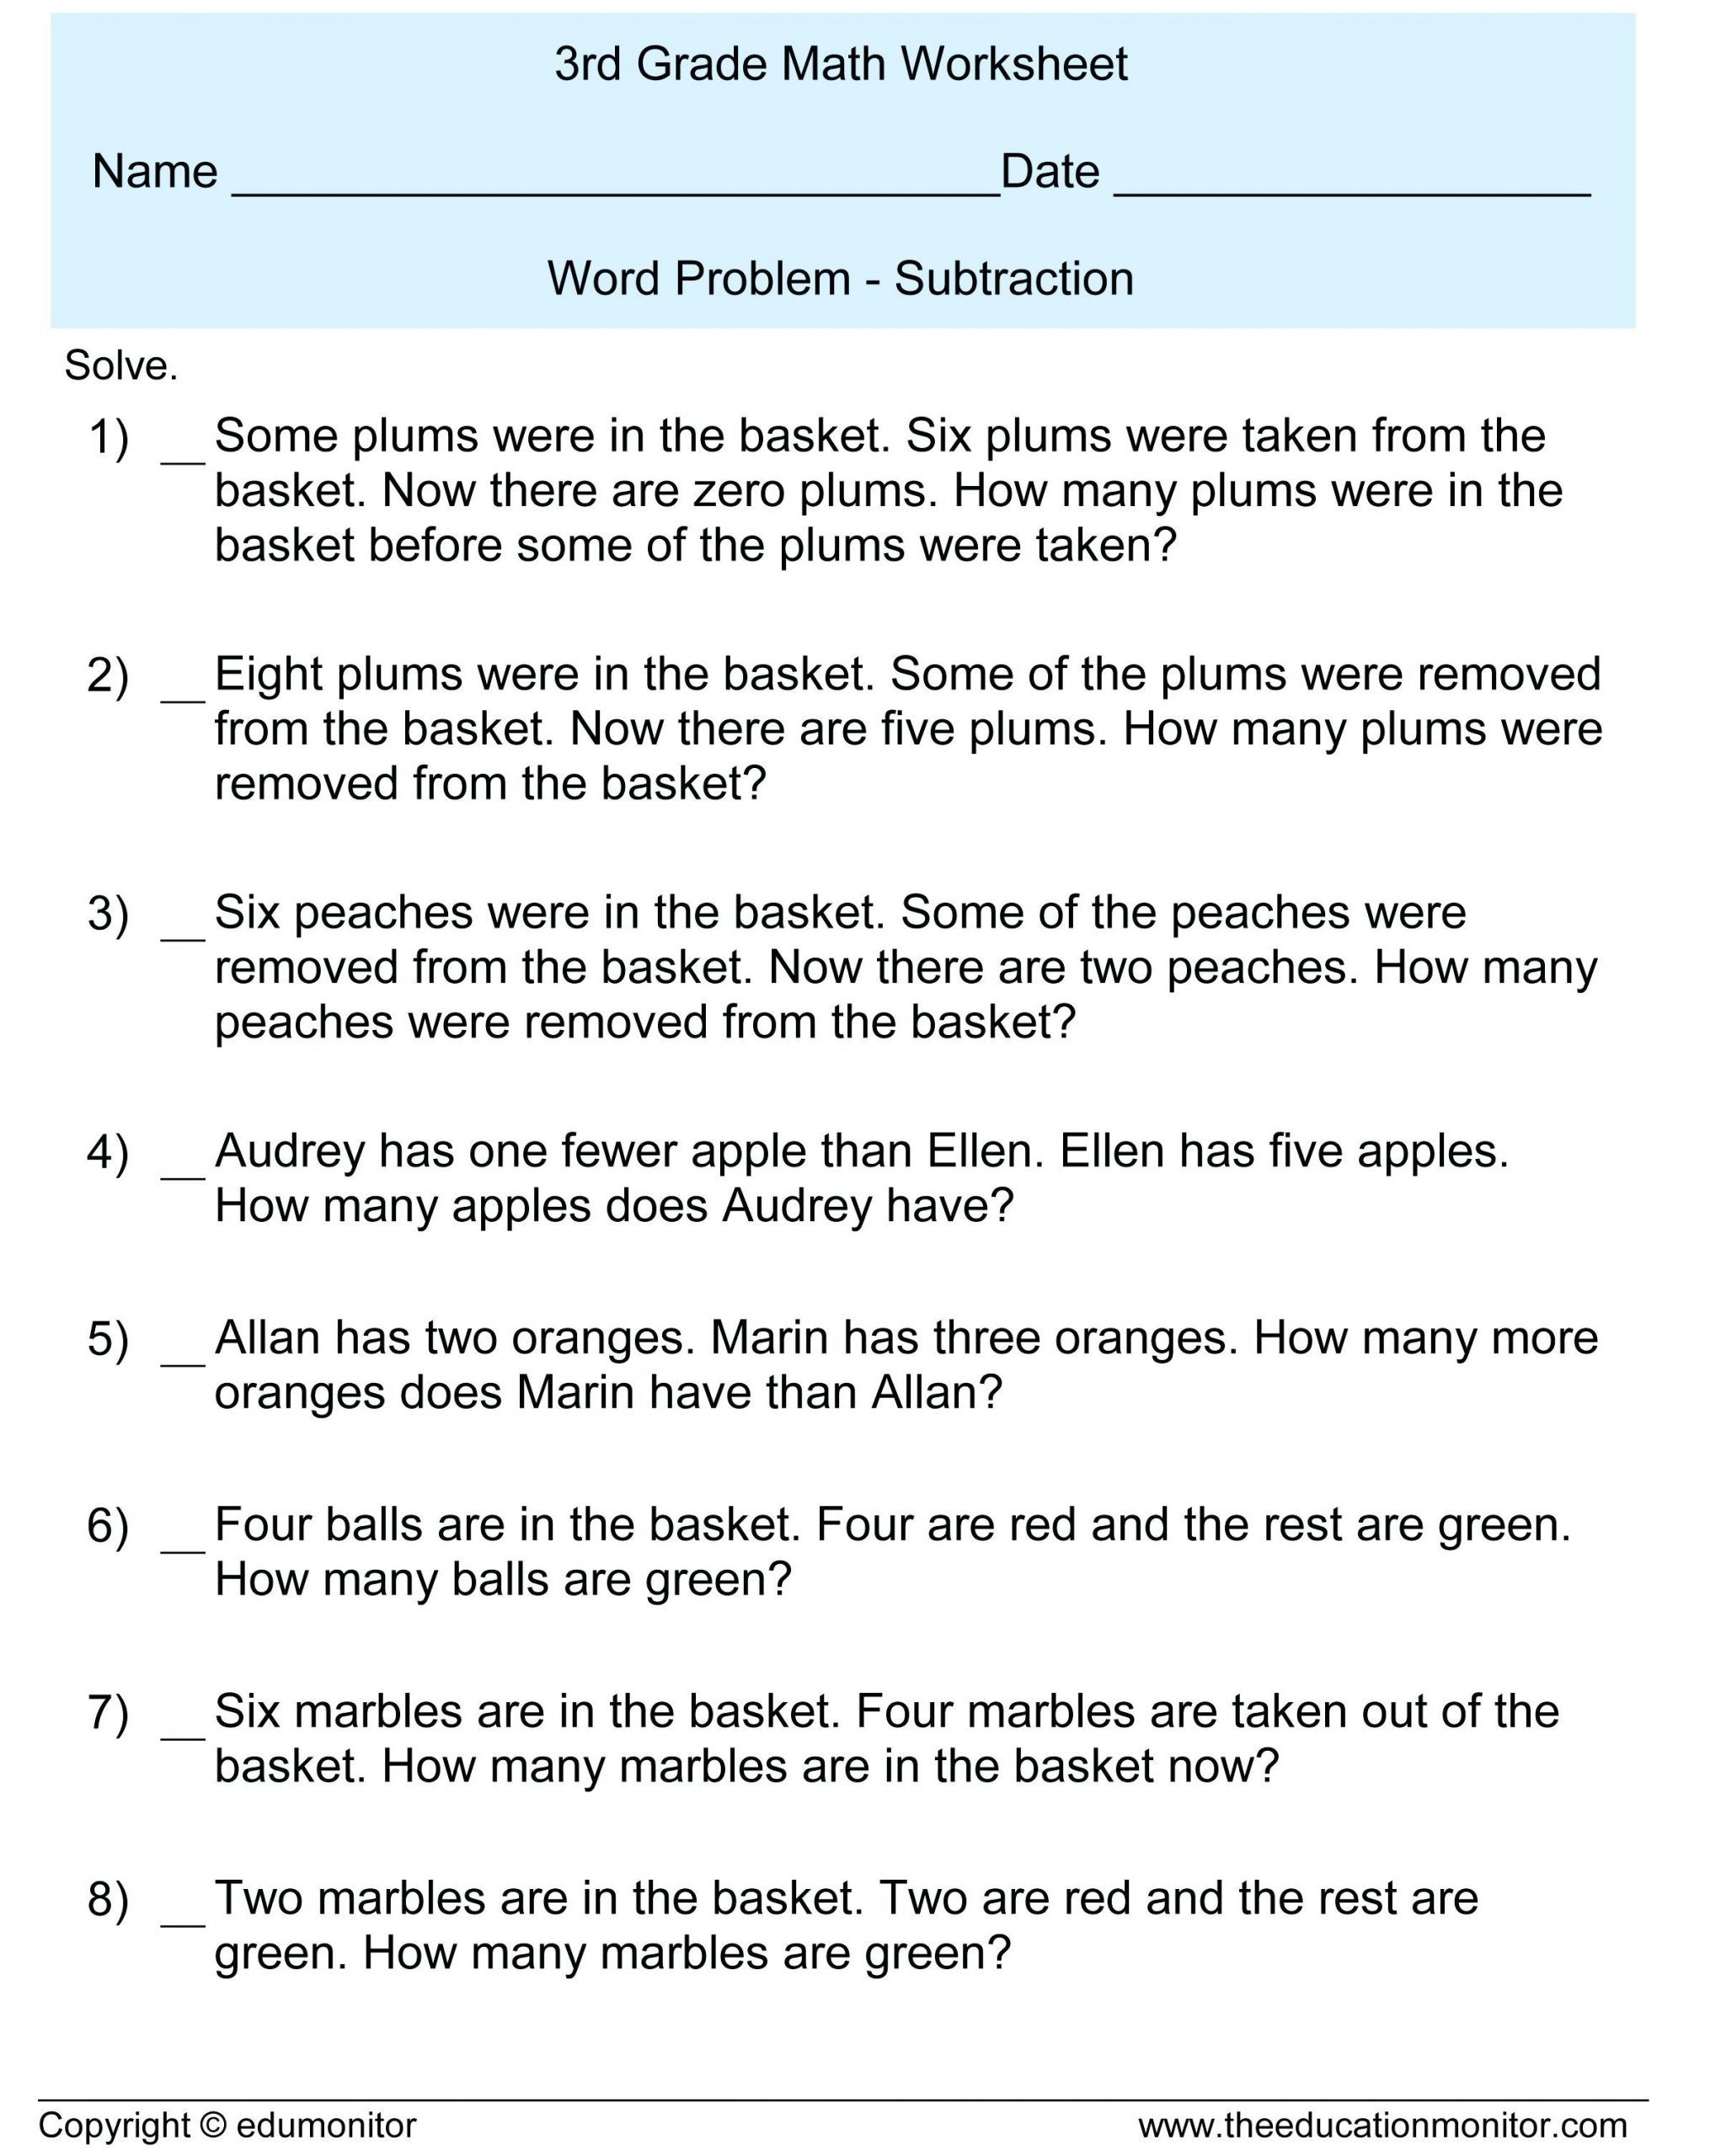 4 Free Math Worksheets Second Grade 2 Counting Money Counting Money Four Coins Plus In 2020 Word Problem Worksheets 3rd Grade Math Worksheets 4th Grade Math Worksheets